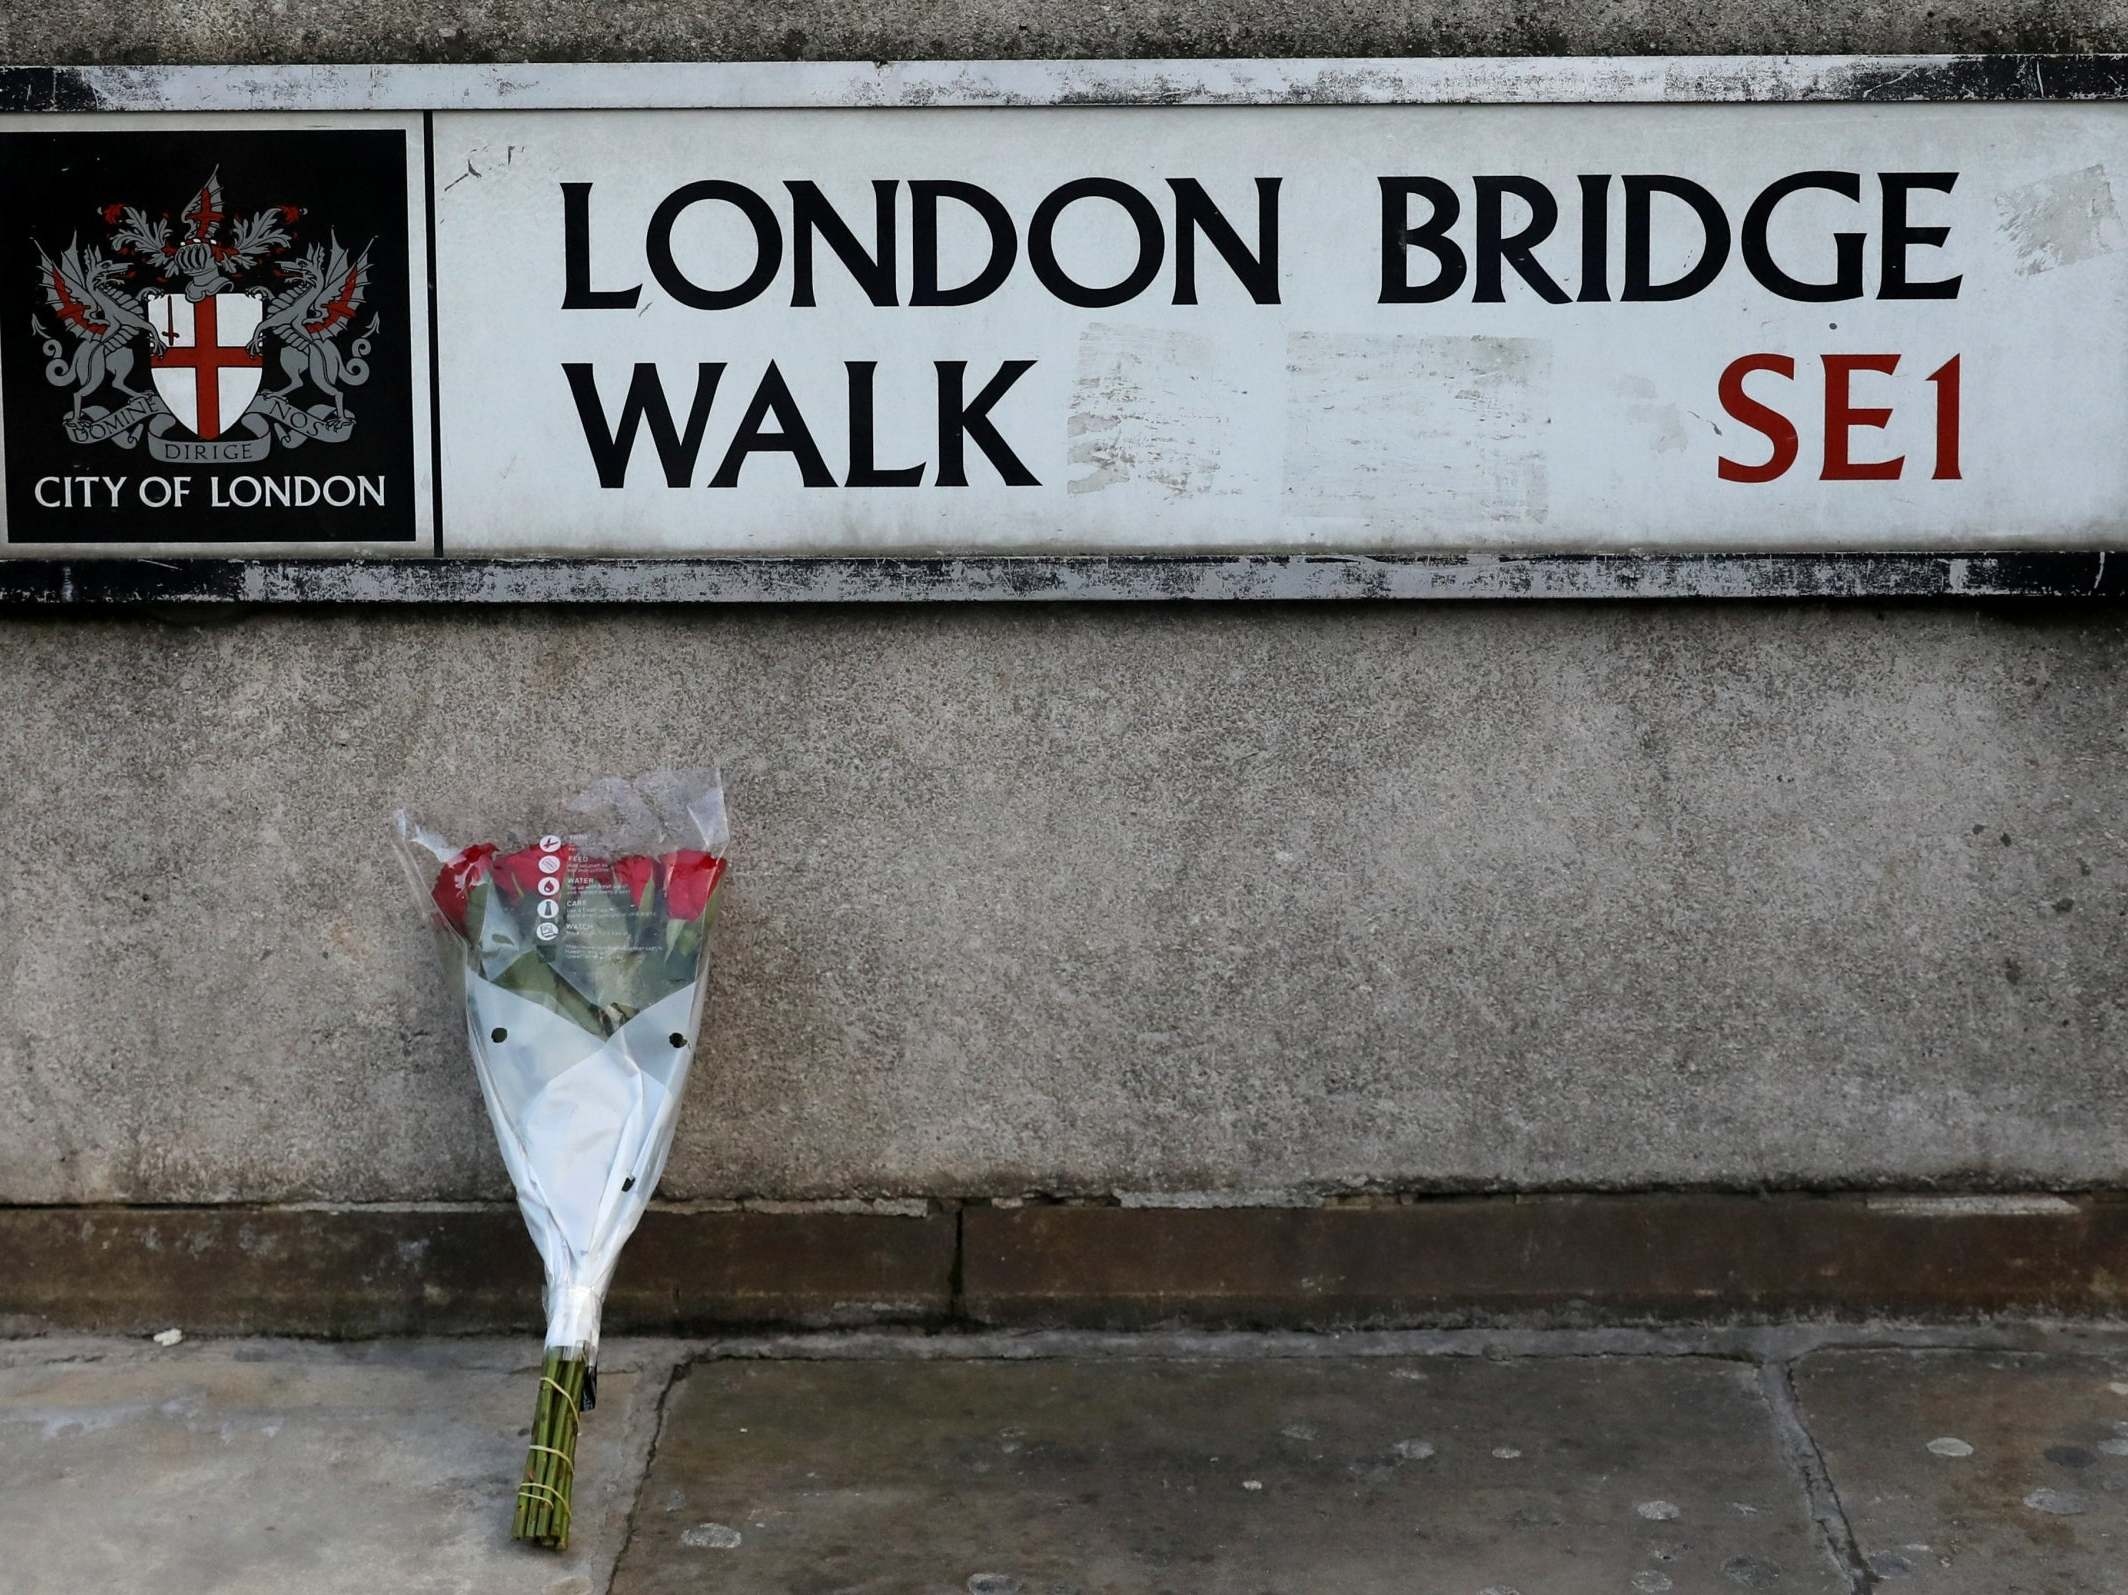 Fishmongers' Hall attacker Usman Khan was visited by police two weeks before deadly rampage, court hears thumbnail